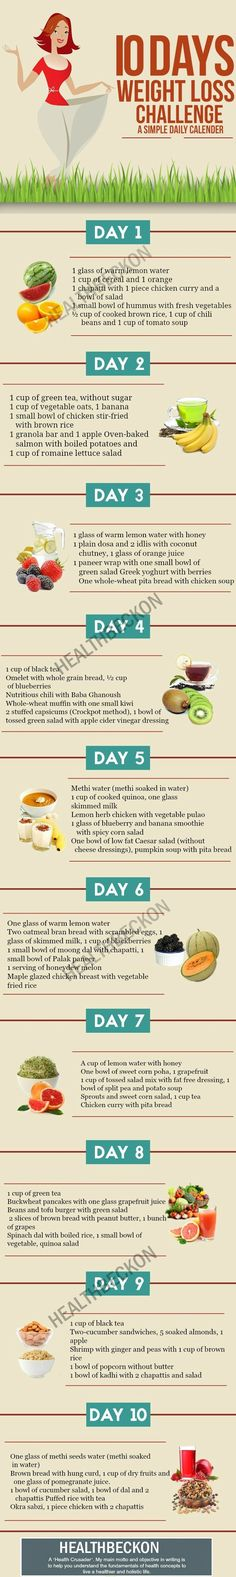 If you too are looking for ways to lose weight and live a healthier life, you have come to the right place! The following tips can help you shed a few pounds, and that too in just 10 days! #weightlossrecipes